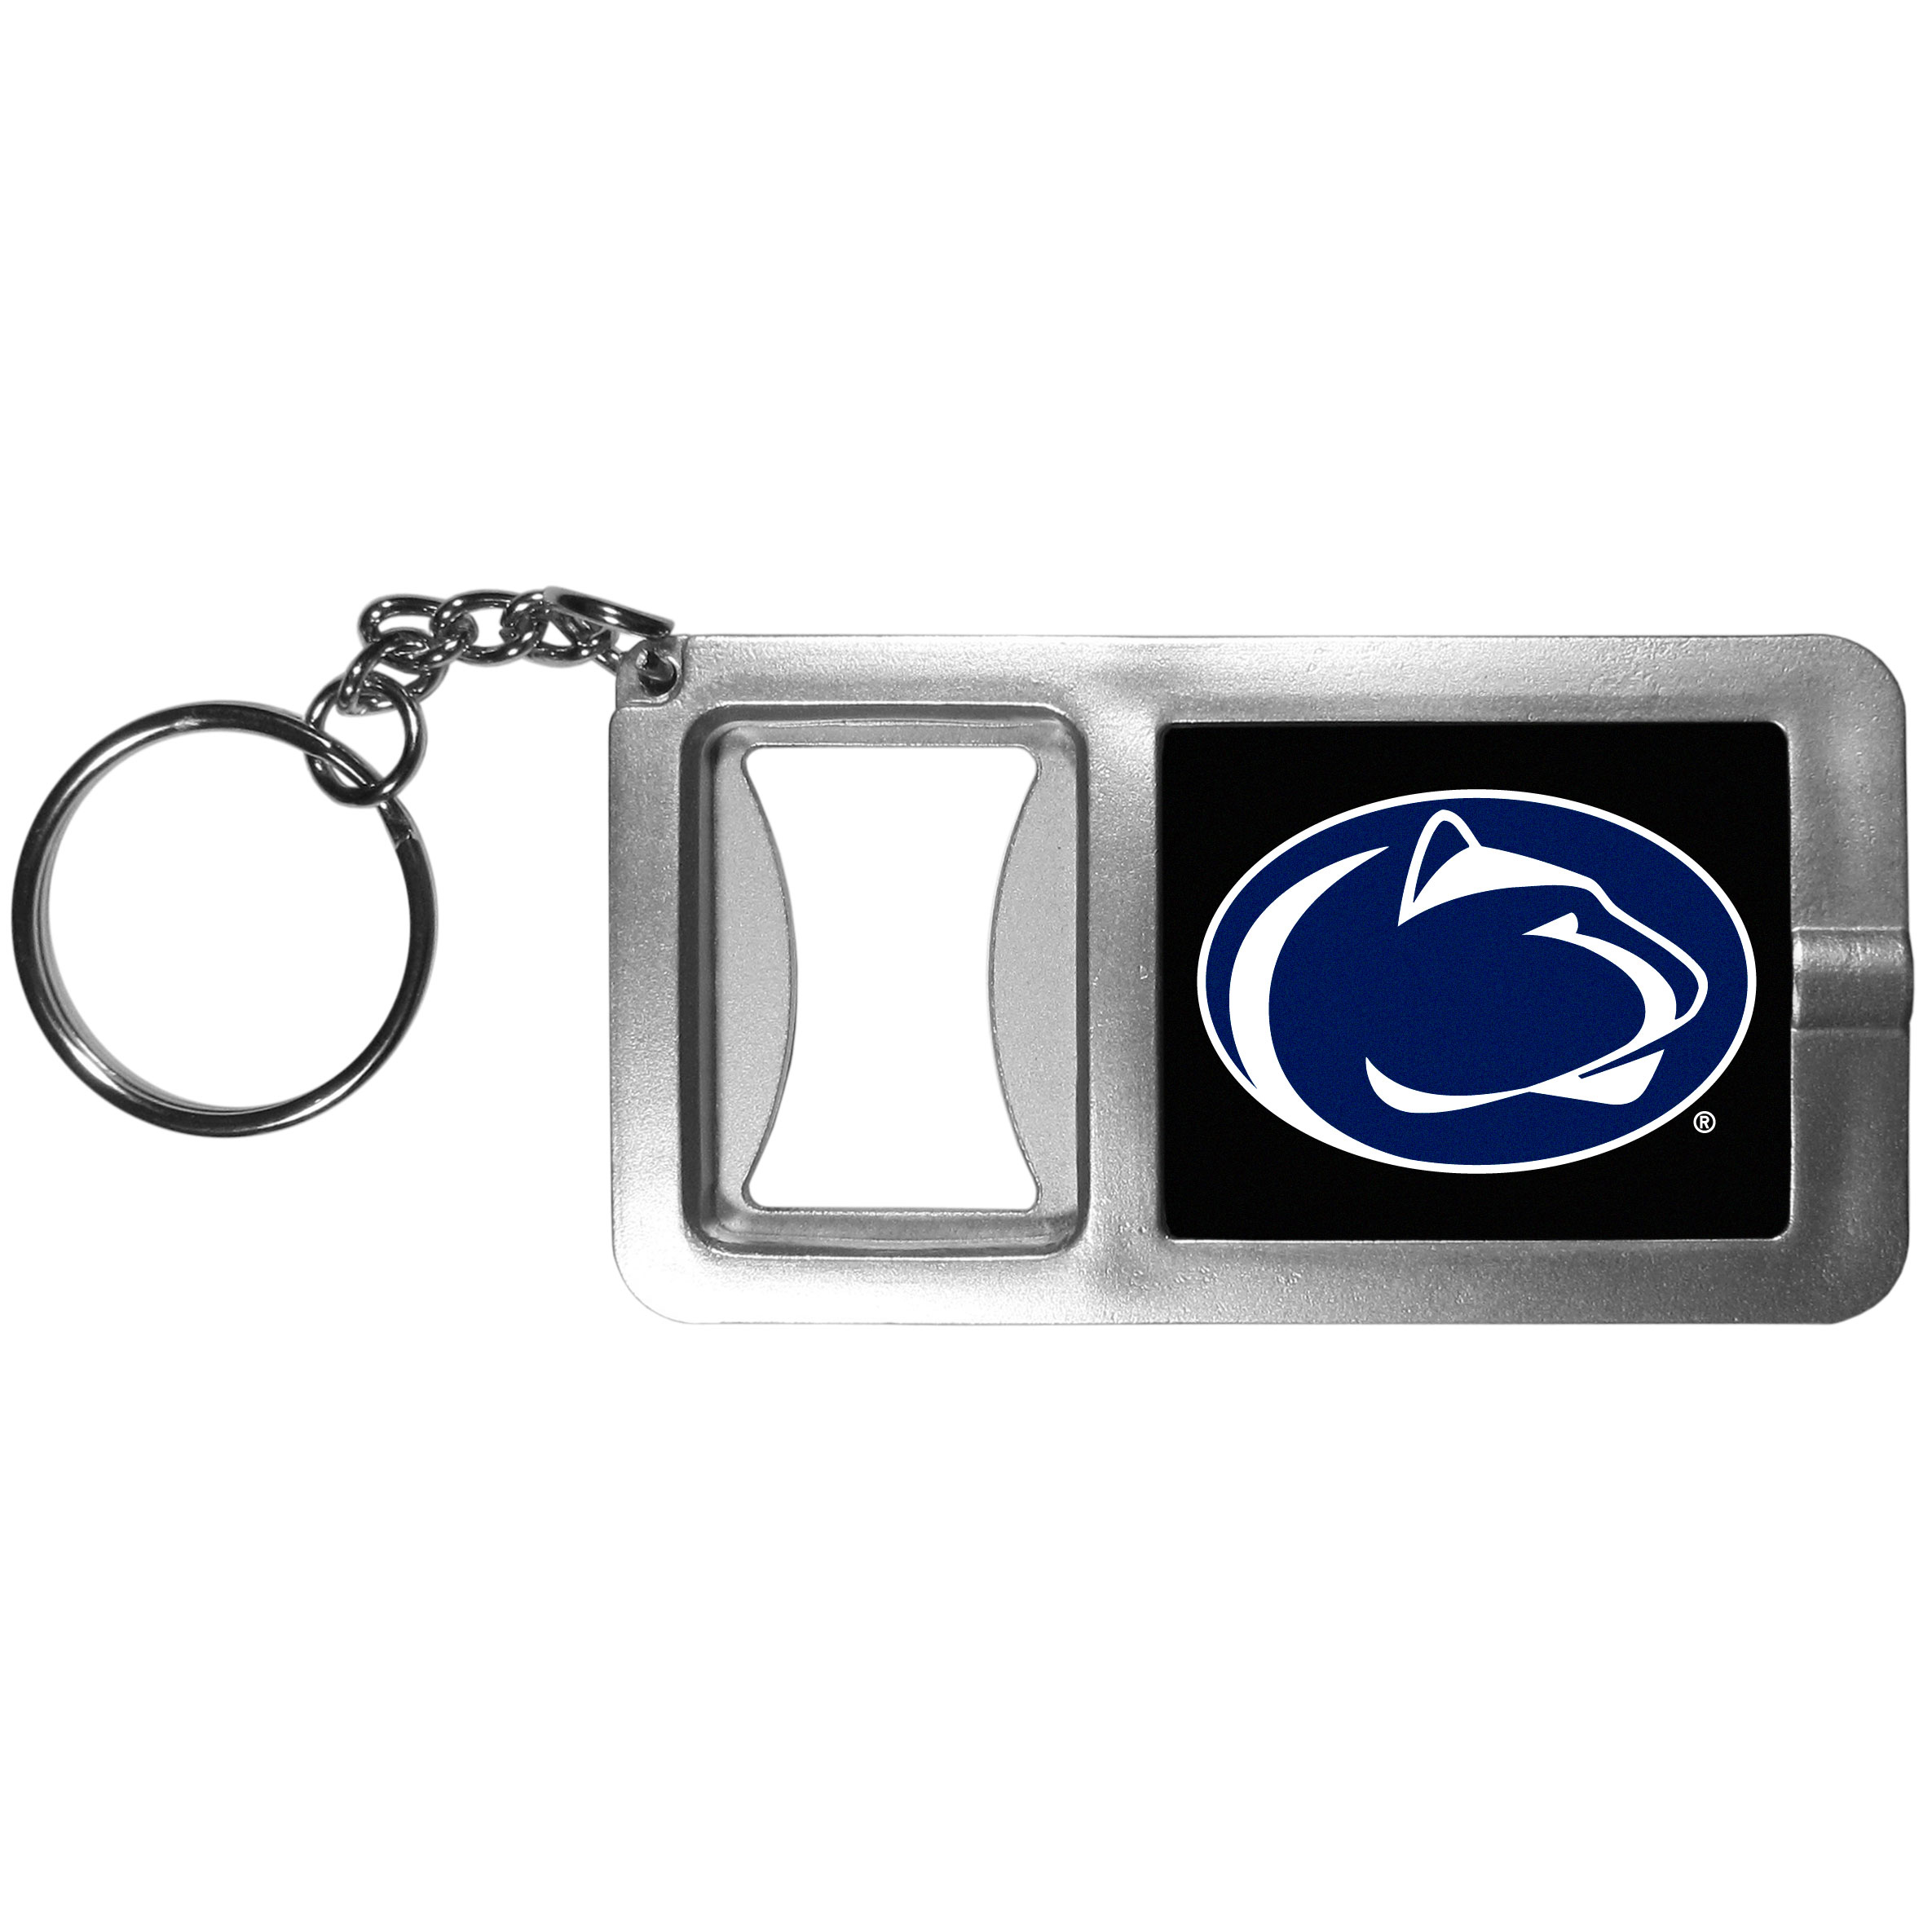 Penn St. Nittany Lions Flashlight Key Chain with Bottle Opener - Never be without light with our Penn St. Nittany Lions flashlight keychain that features a handy bottle opener feature. This versatile key chain is perfect for camping and travel and is a great way to show off your team pride!